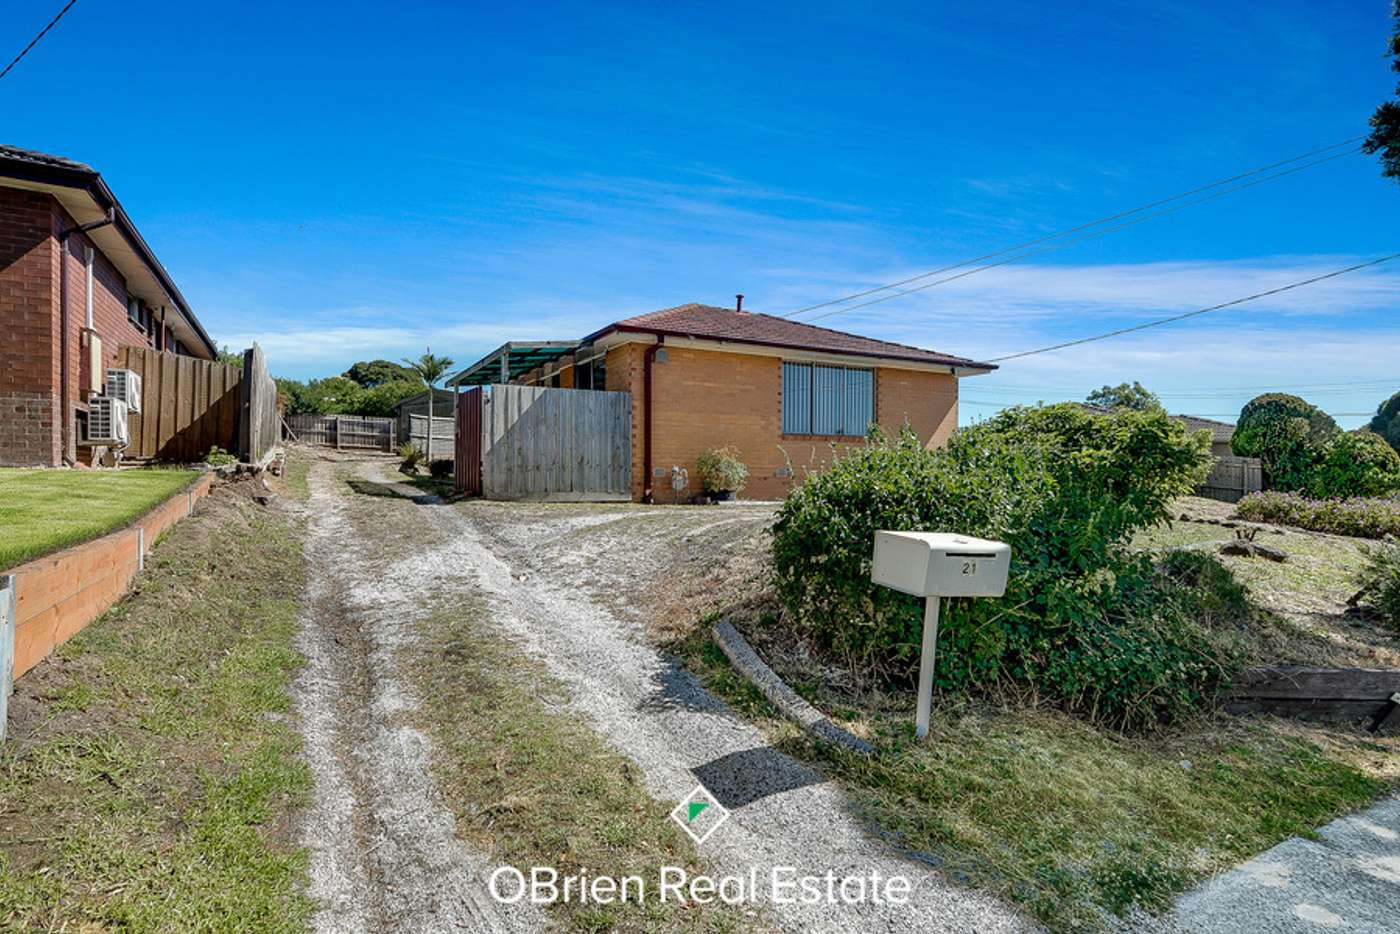 Main view of Homely house listing, 21 Raven Crescent, Narre Warren VIC 3805